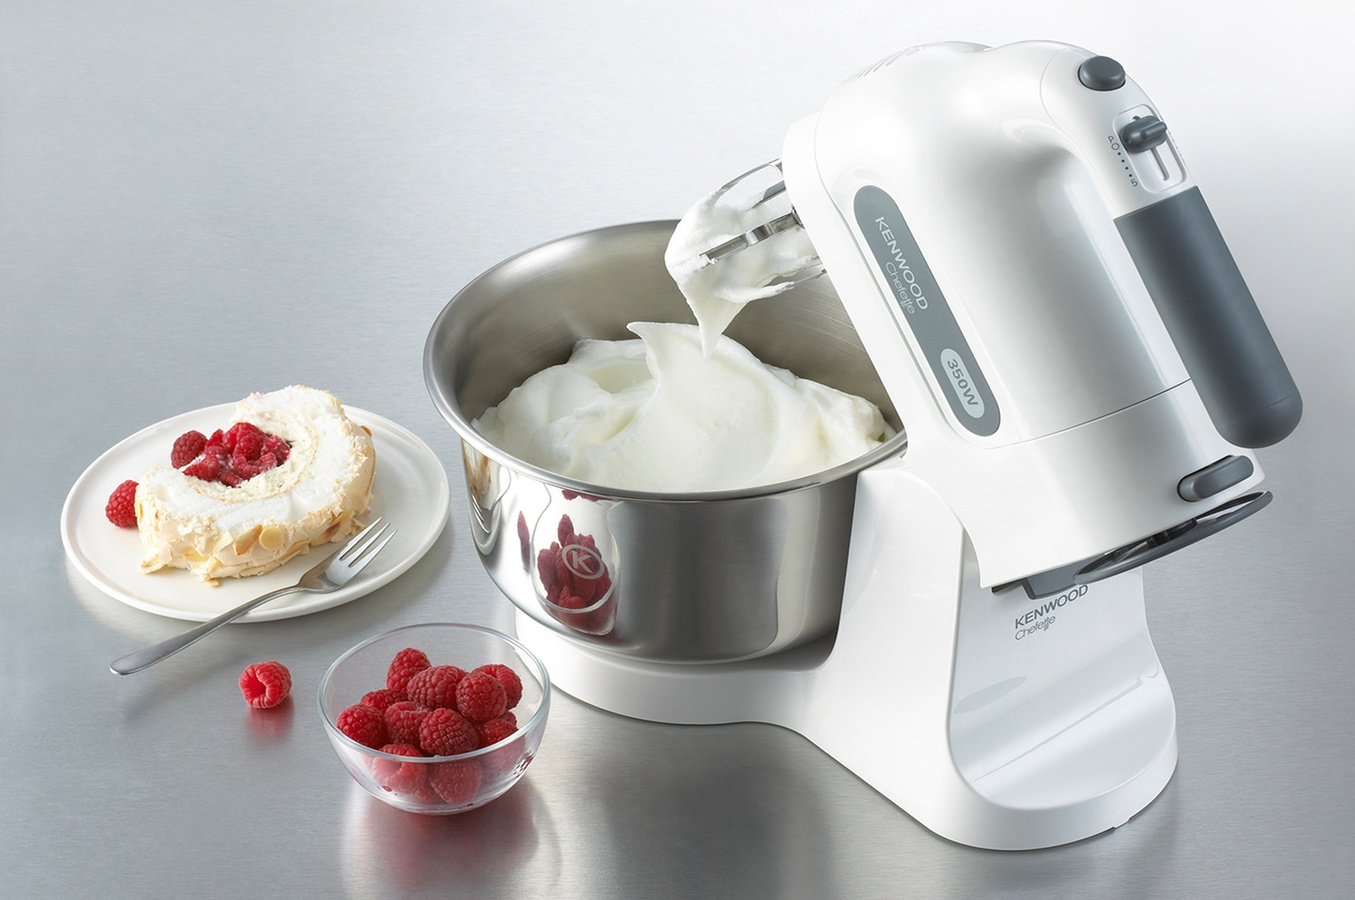 Kenwood hm680 chefette a